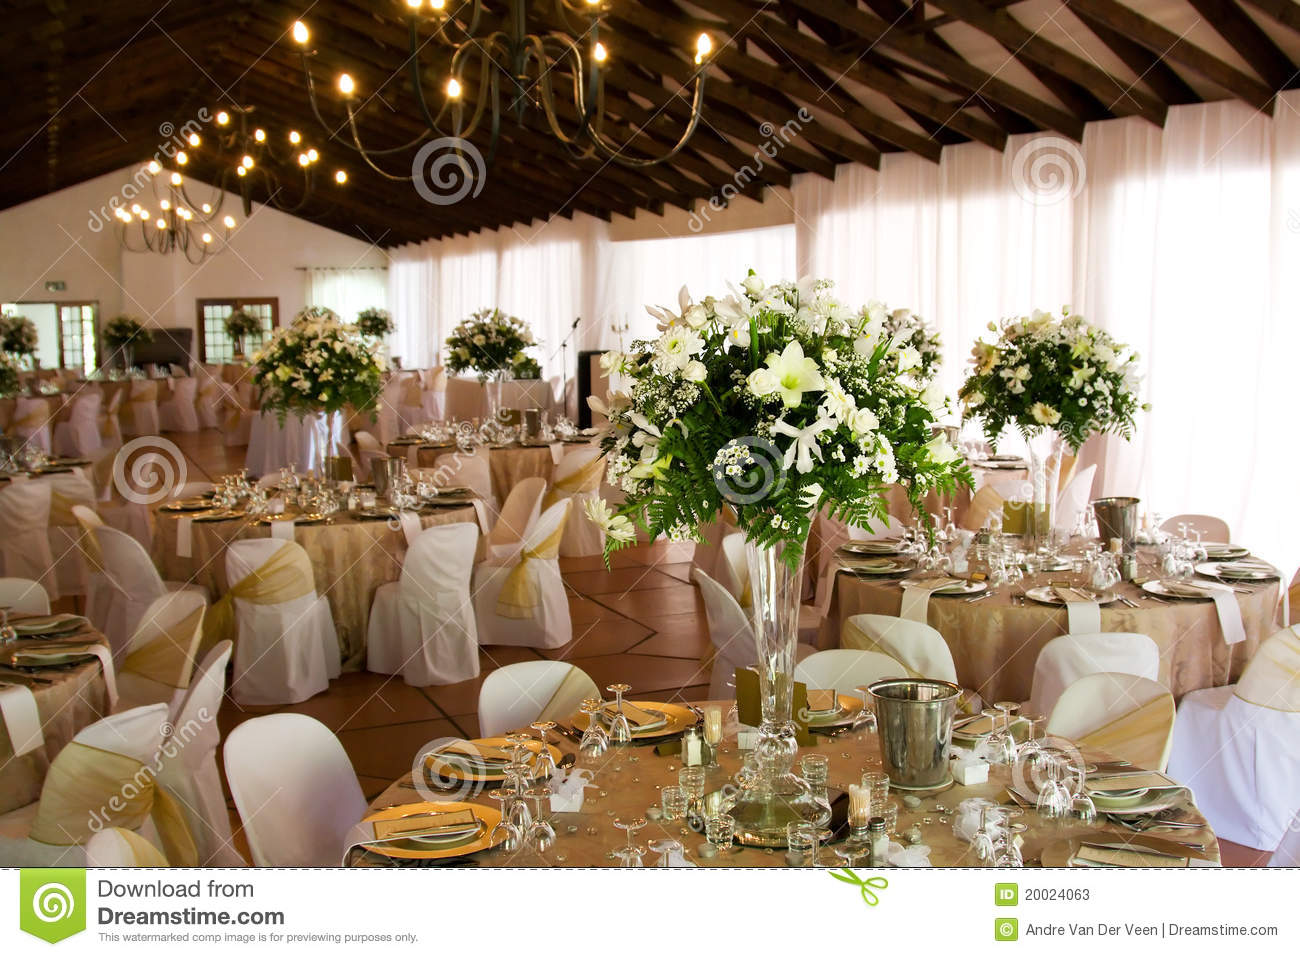 Indoors Wedding Reception Venue With Decor Stock Photos